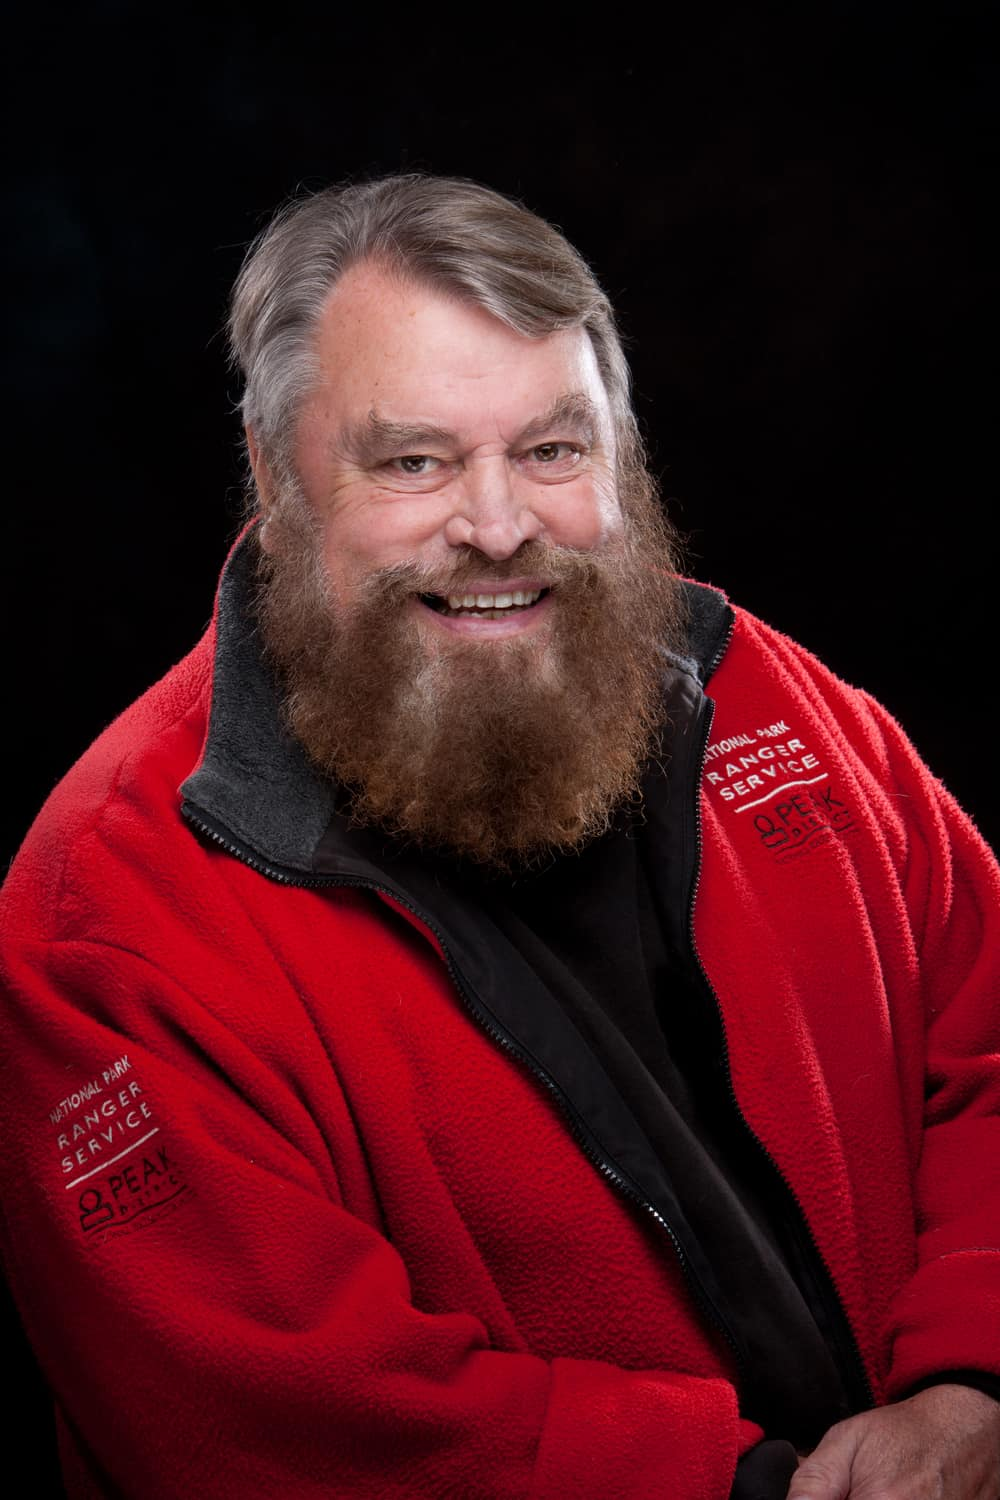 File:BrianBlessed.jpg